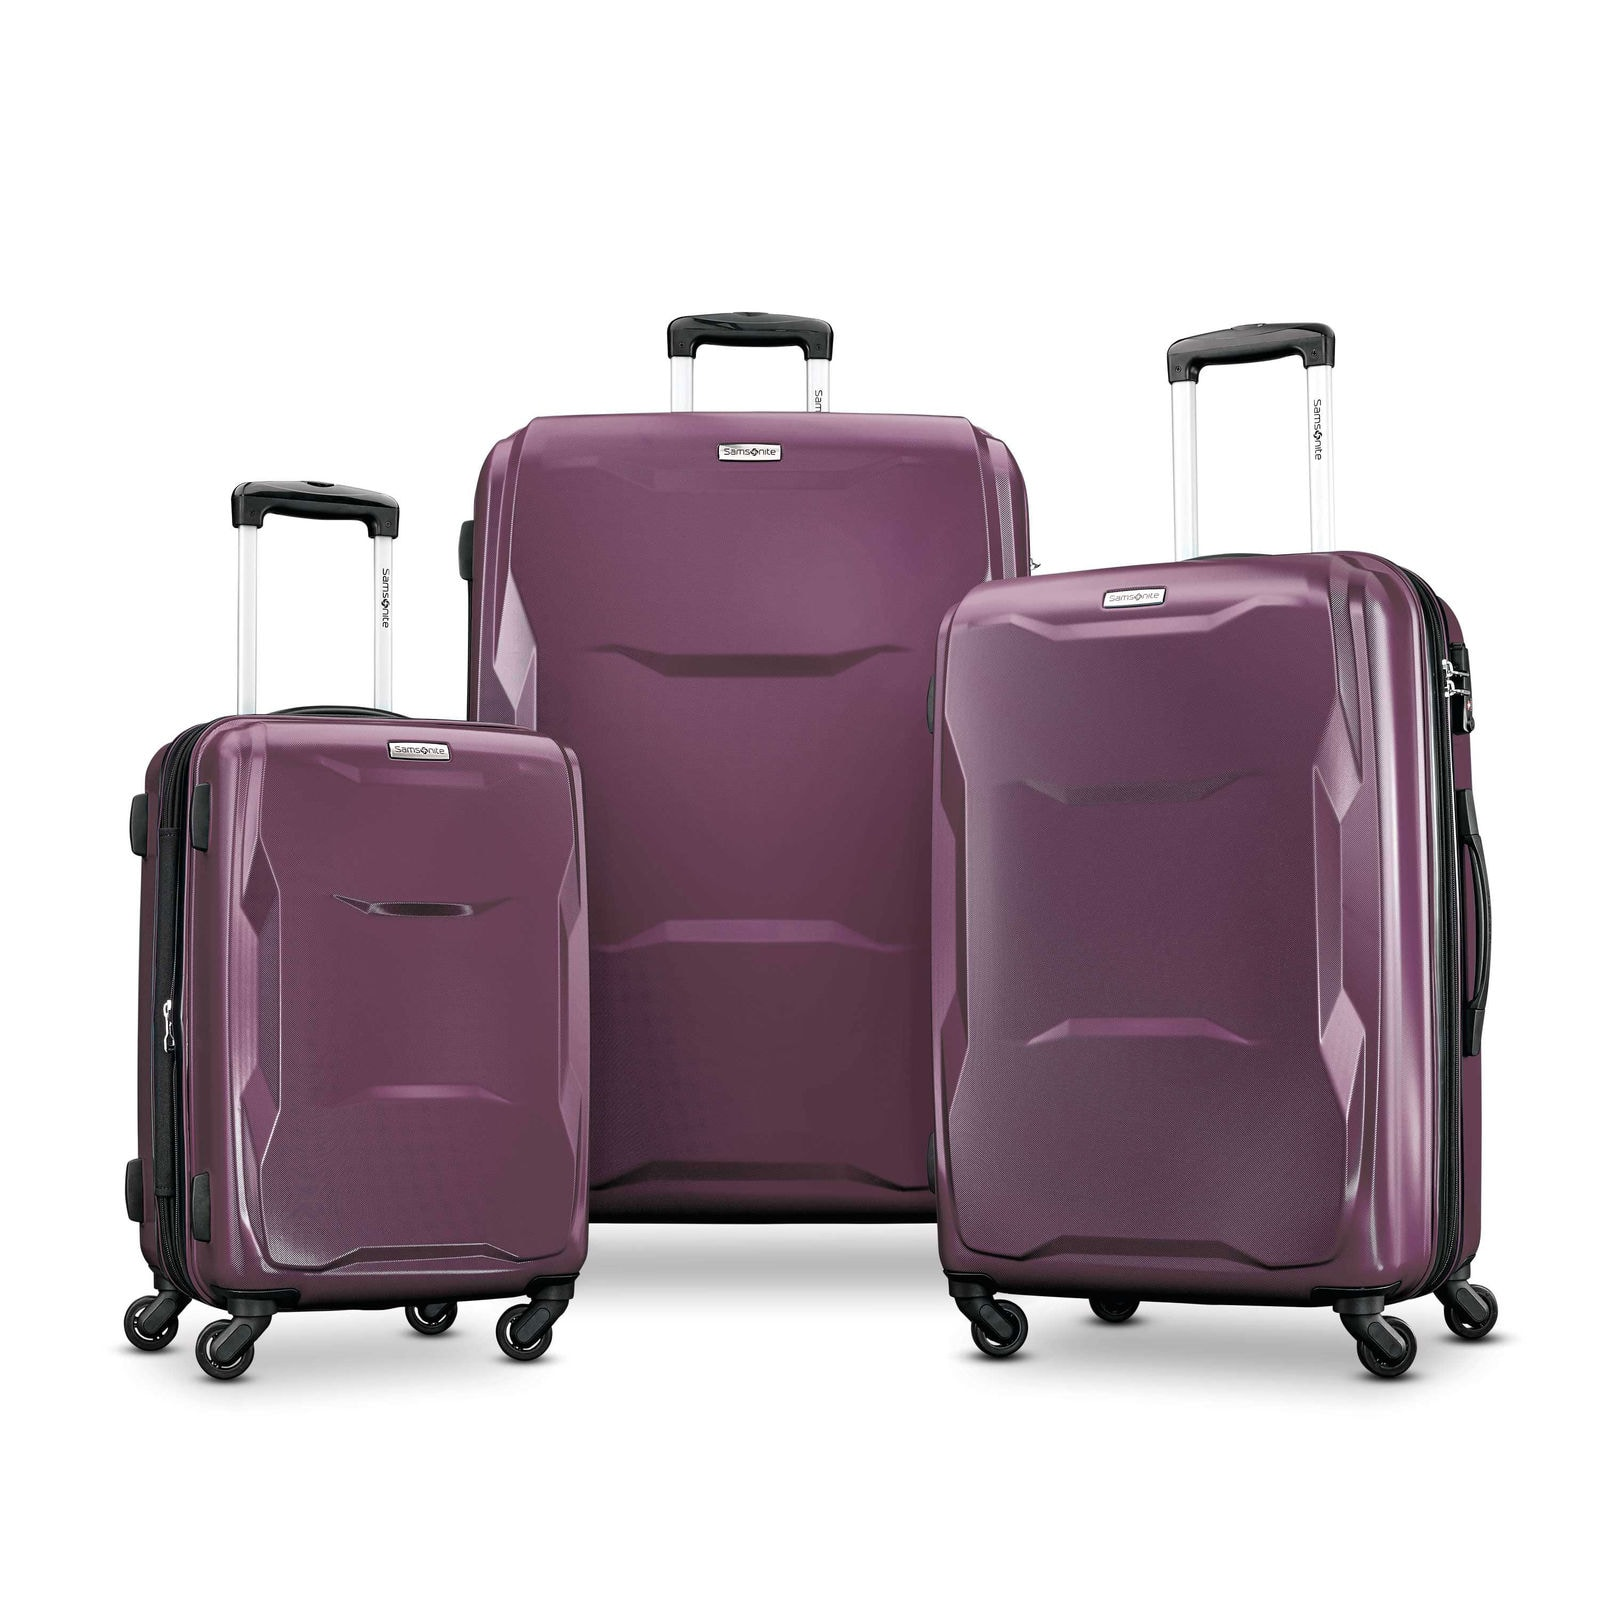 Samsonite Pivot 3 Piece Luggage set-100% polycarbonate-$160 after code on Ebay